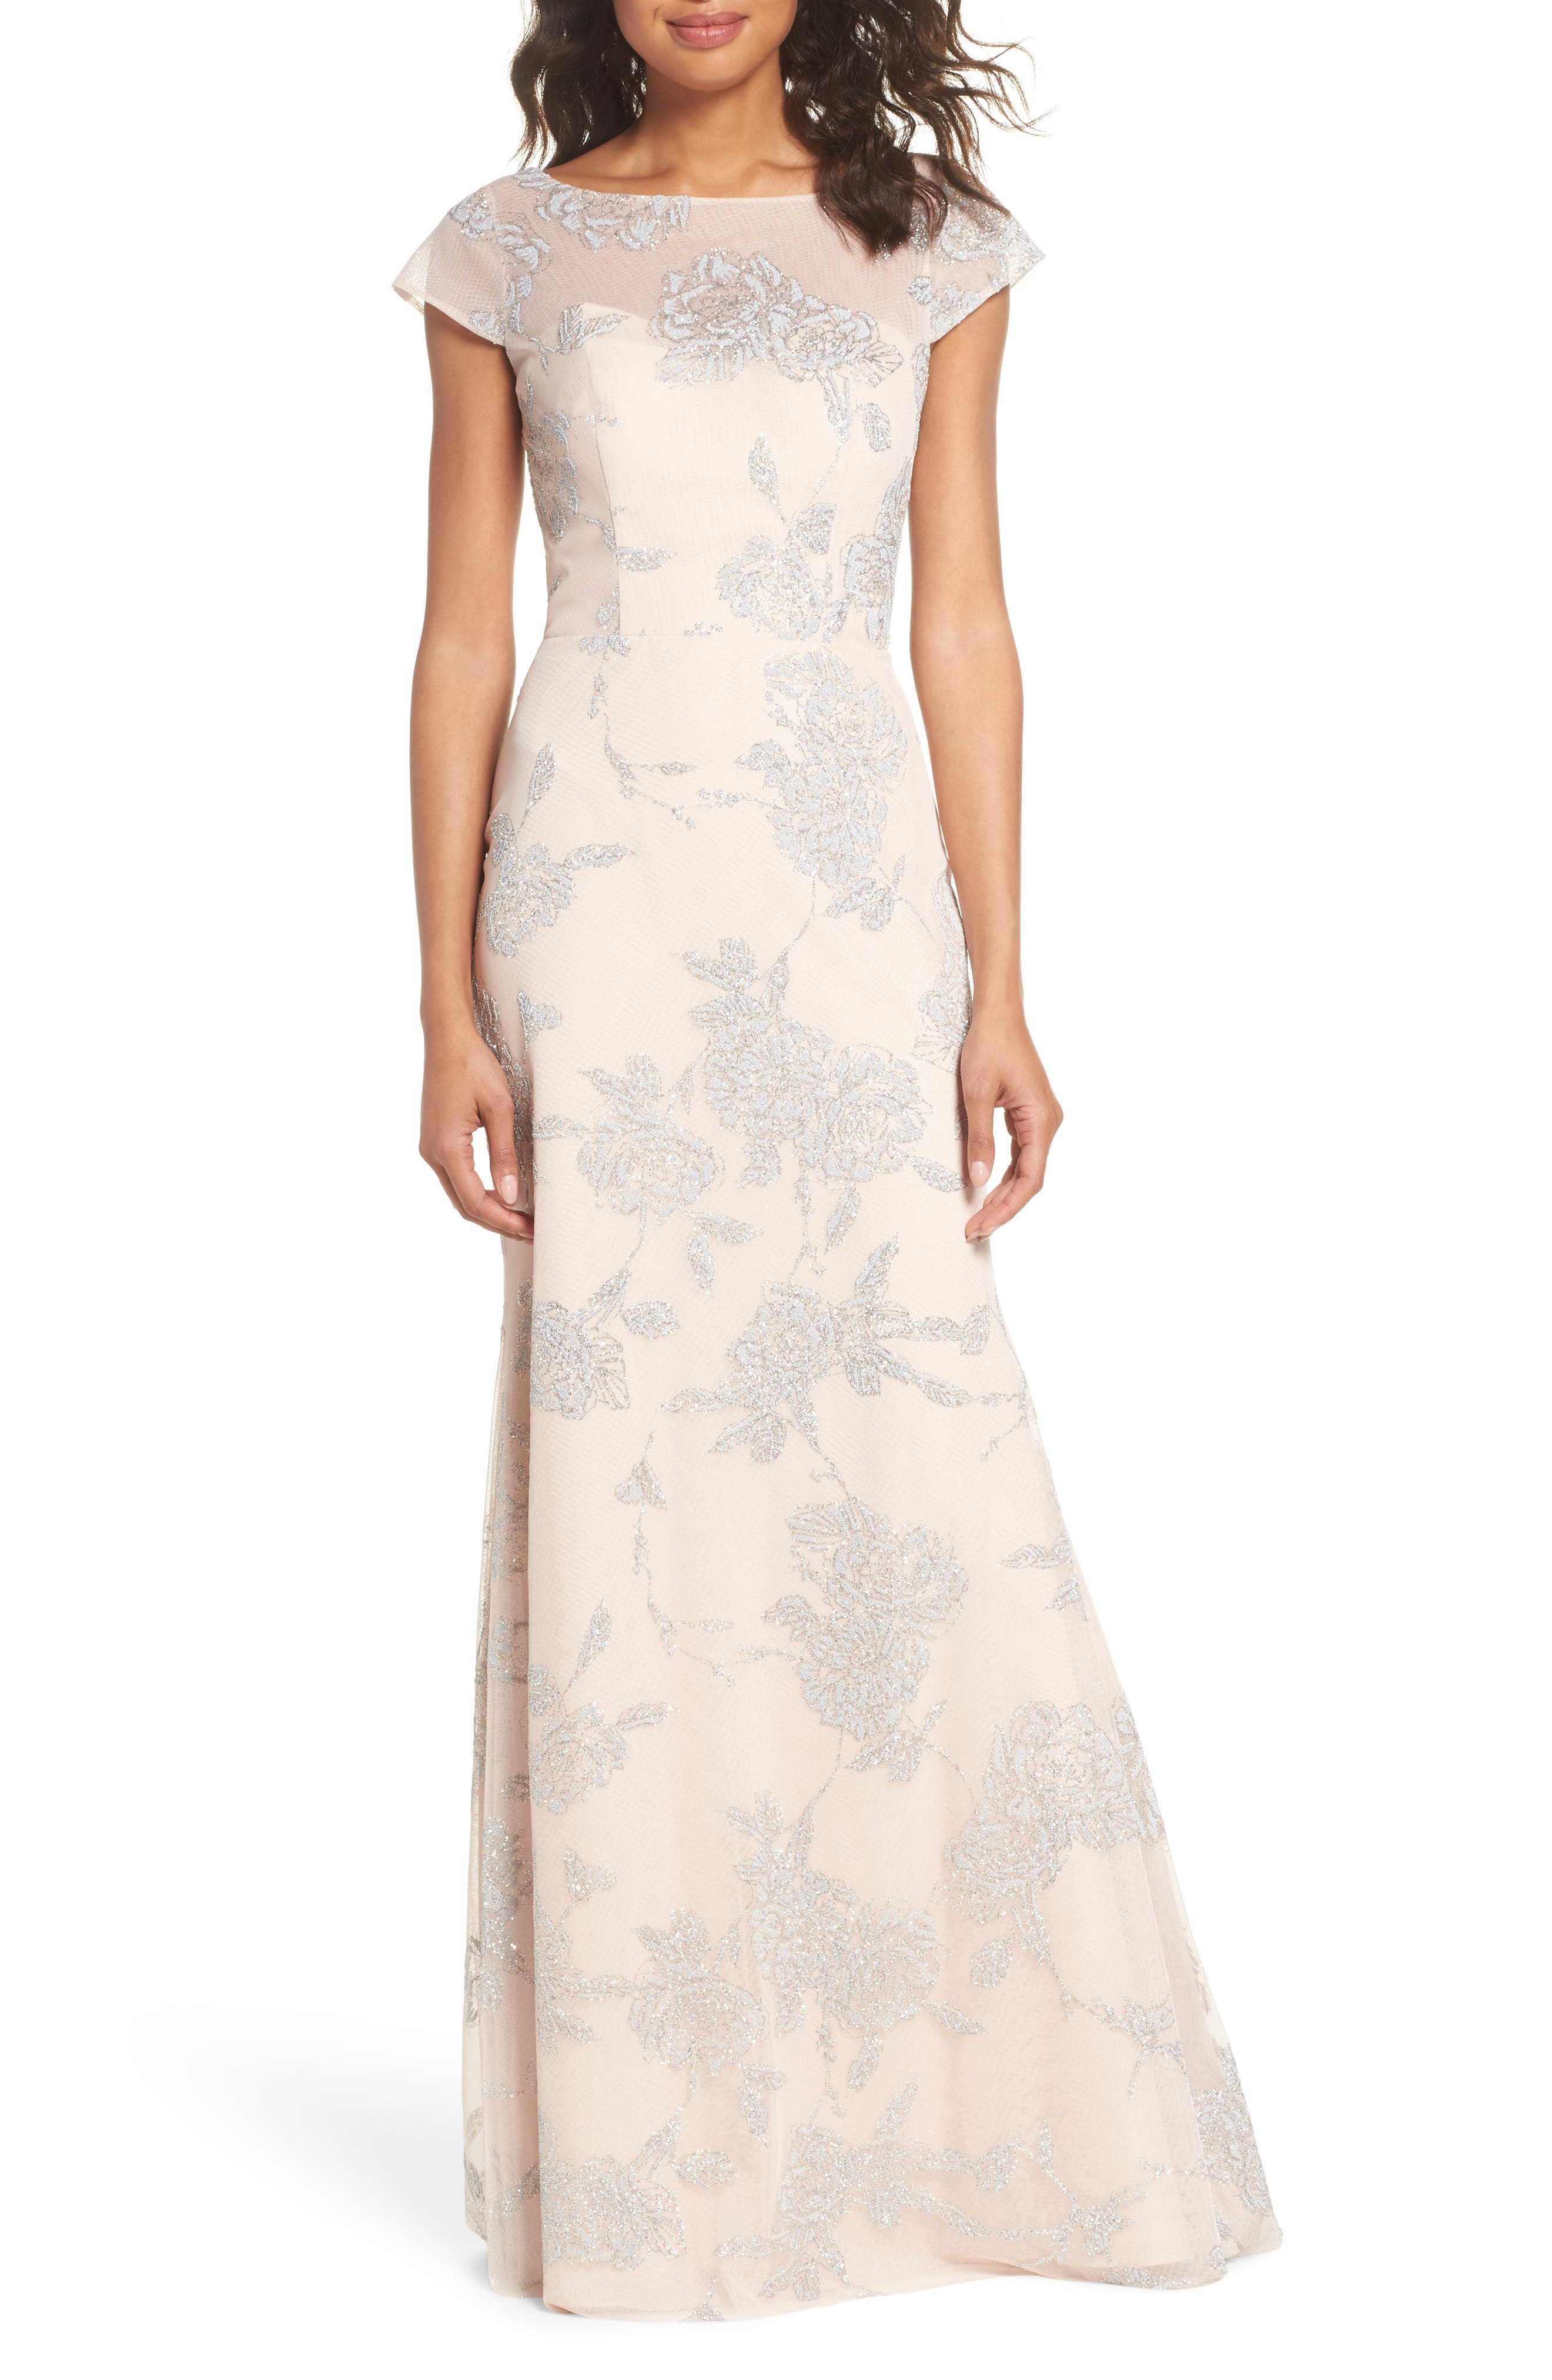 Hayley Paige Occasions Embellished Bateau Neck Gown